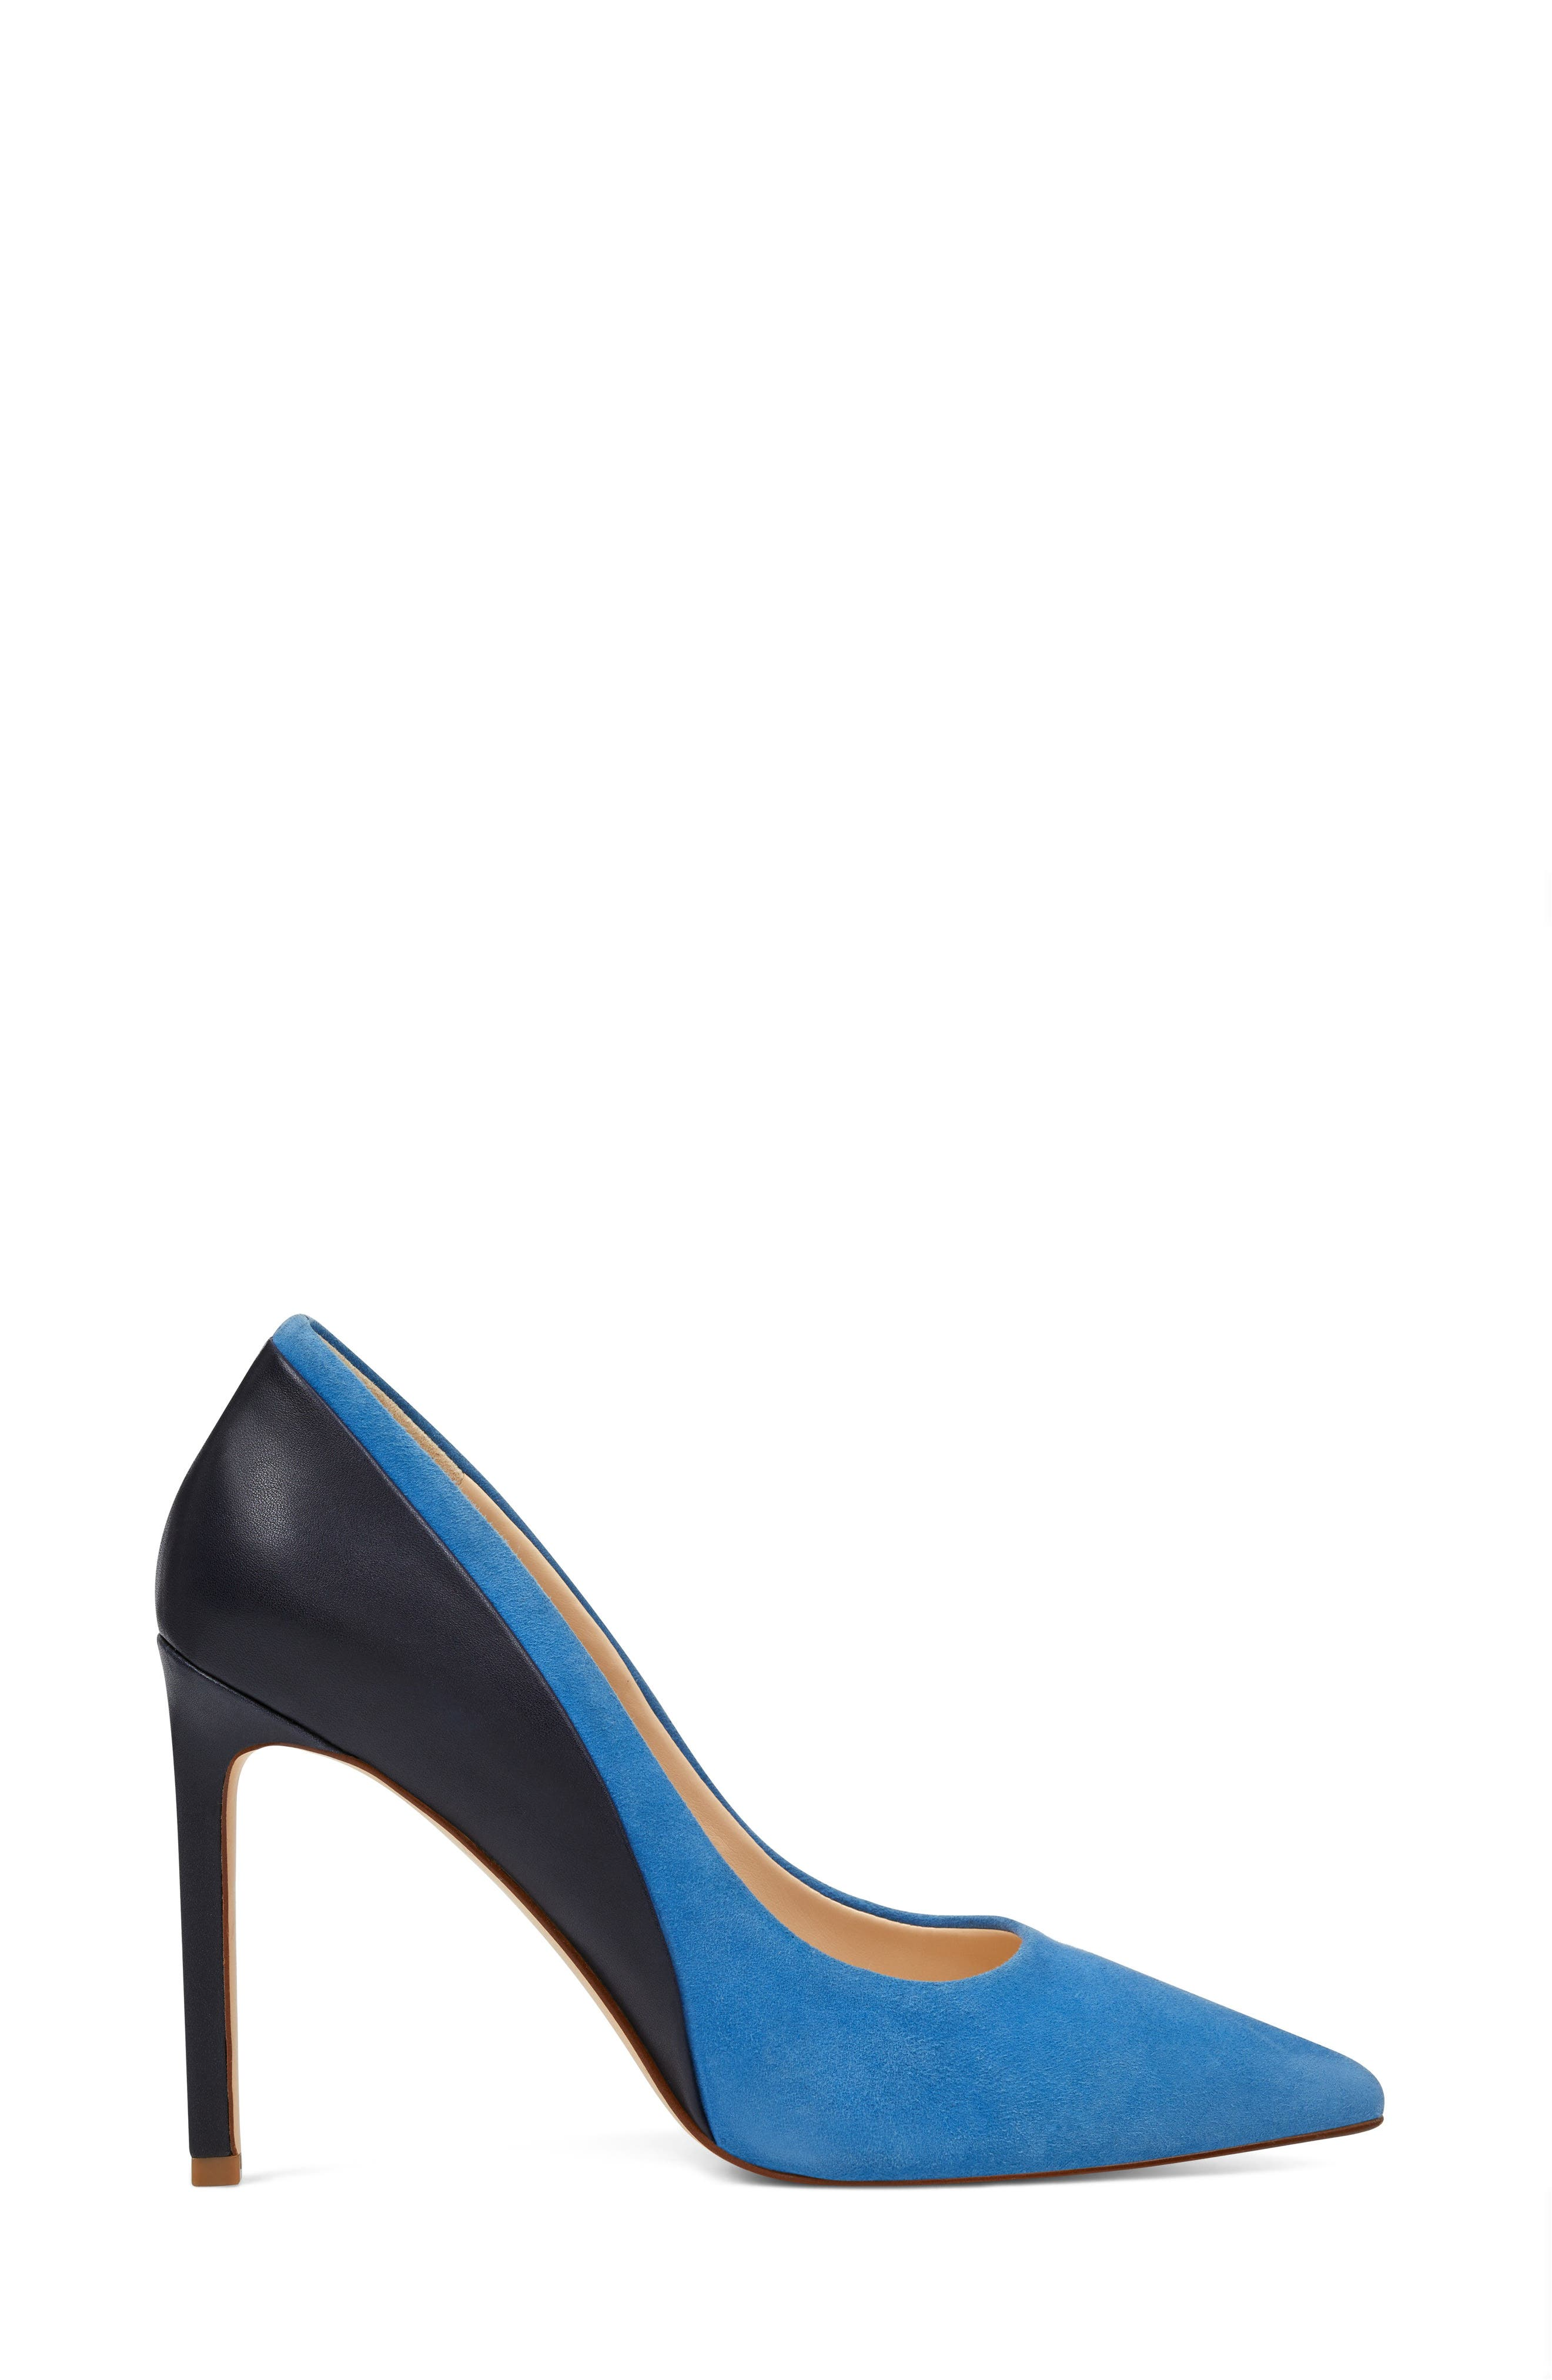 Taymra Pointy Toe Pump,                             Alternate thumbnail 3, color,                             BLUE/ NAVY SUEDE